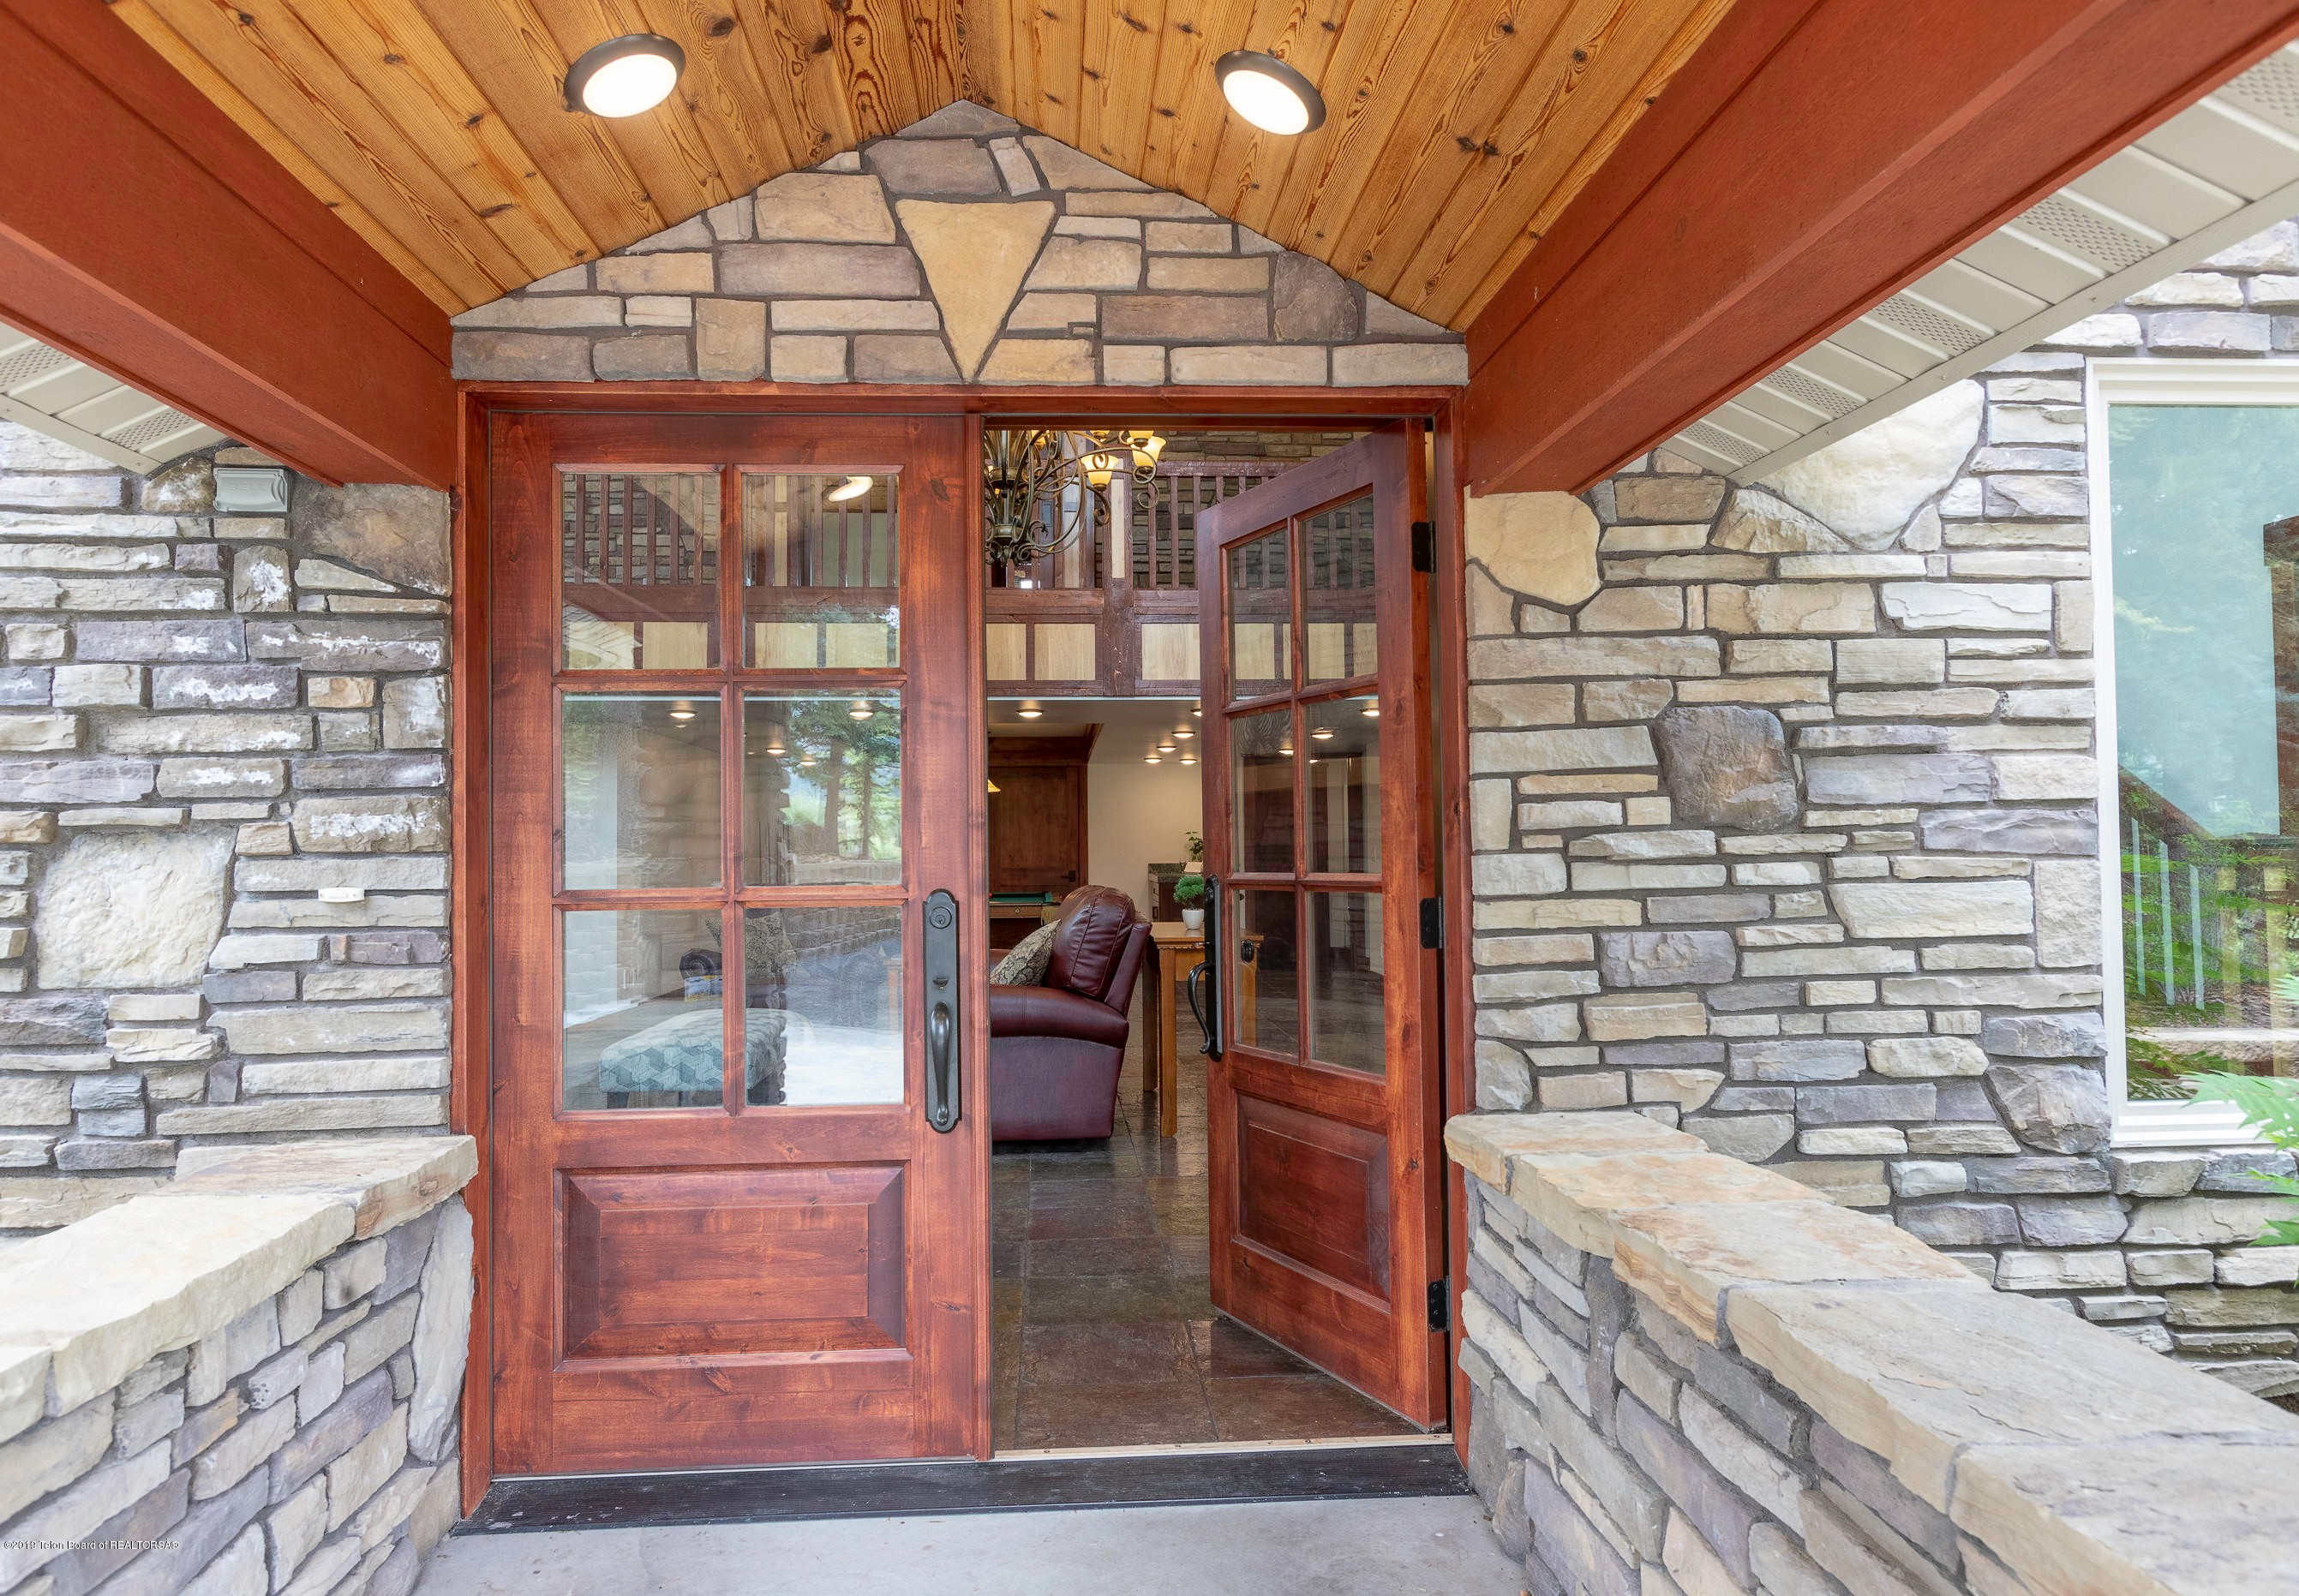 bedford, wy a luxury single family home for sale in bedford, wyoming property id 17-726 christie s international real estate